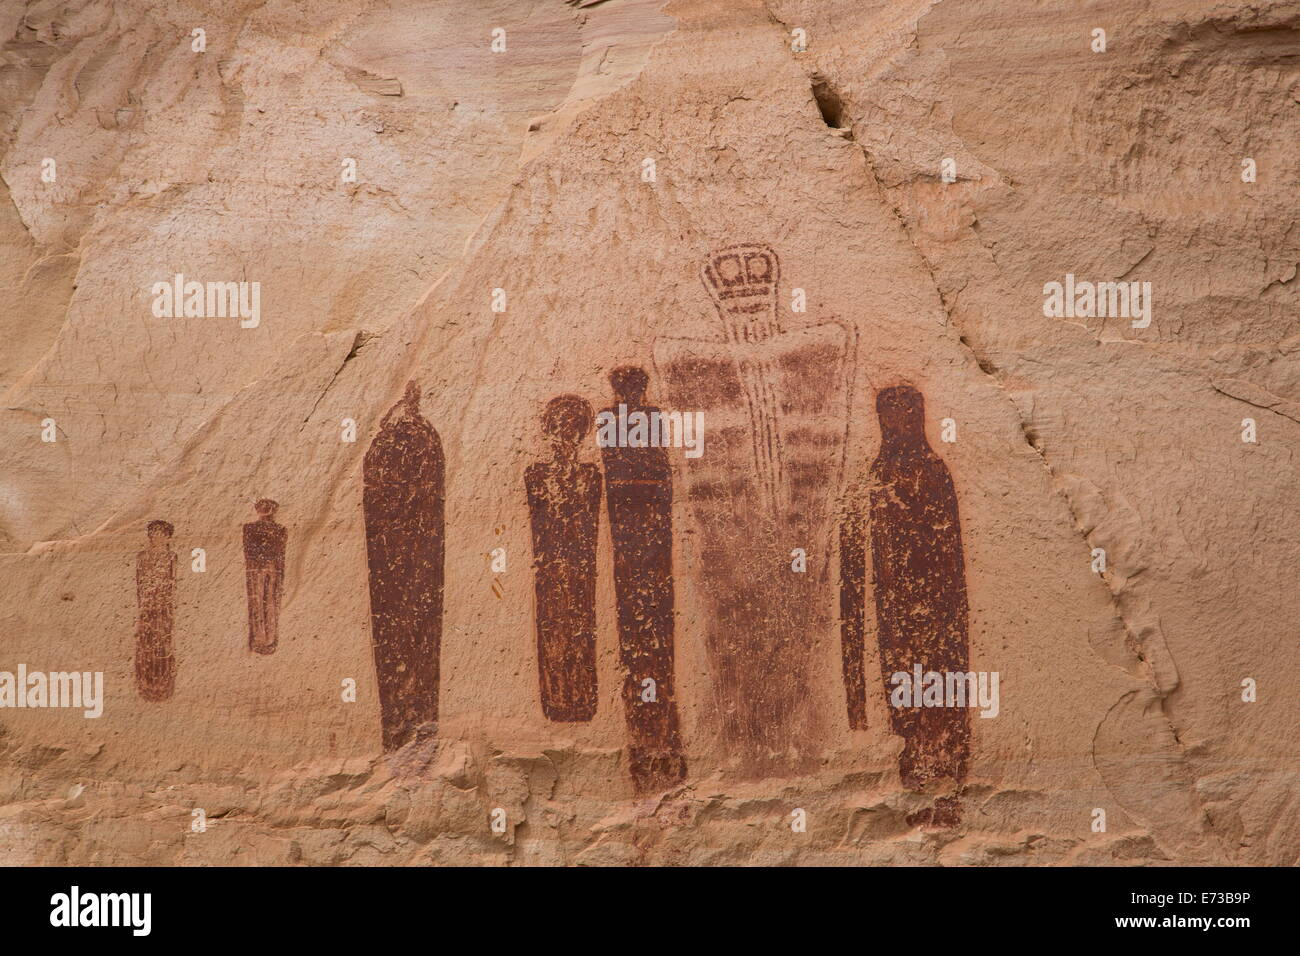 Great Gallery Pictograph Panel, Barrier Canyon Style, Horseshoe Canyon, Canyonlands National Park, Utah, USA - Stock Image